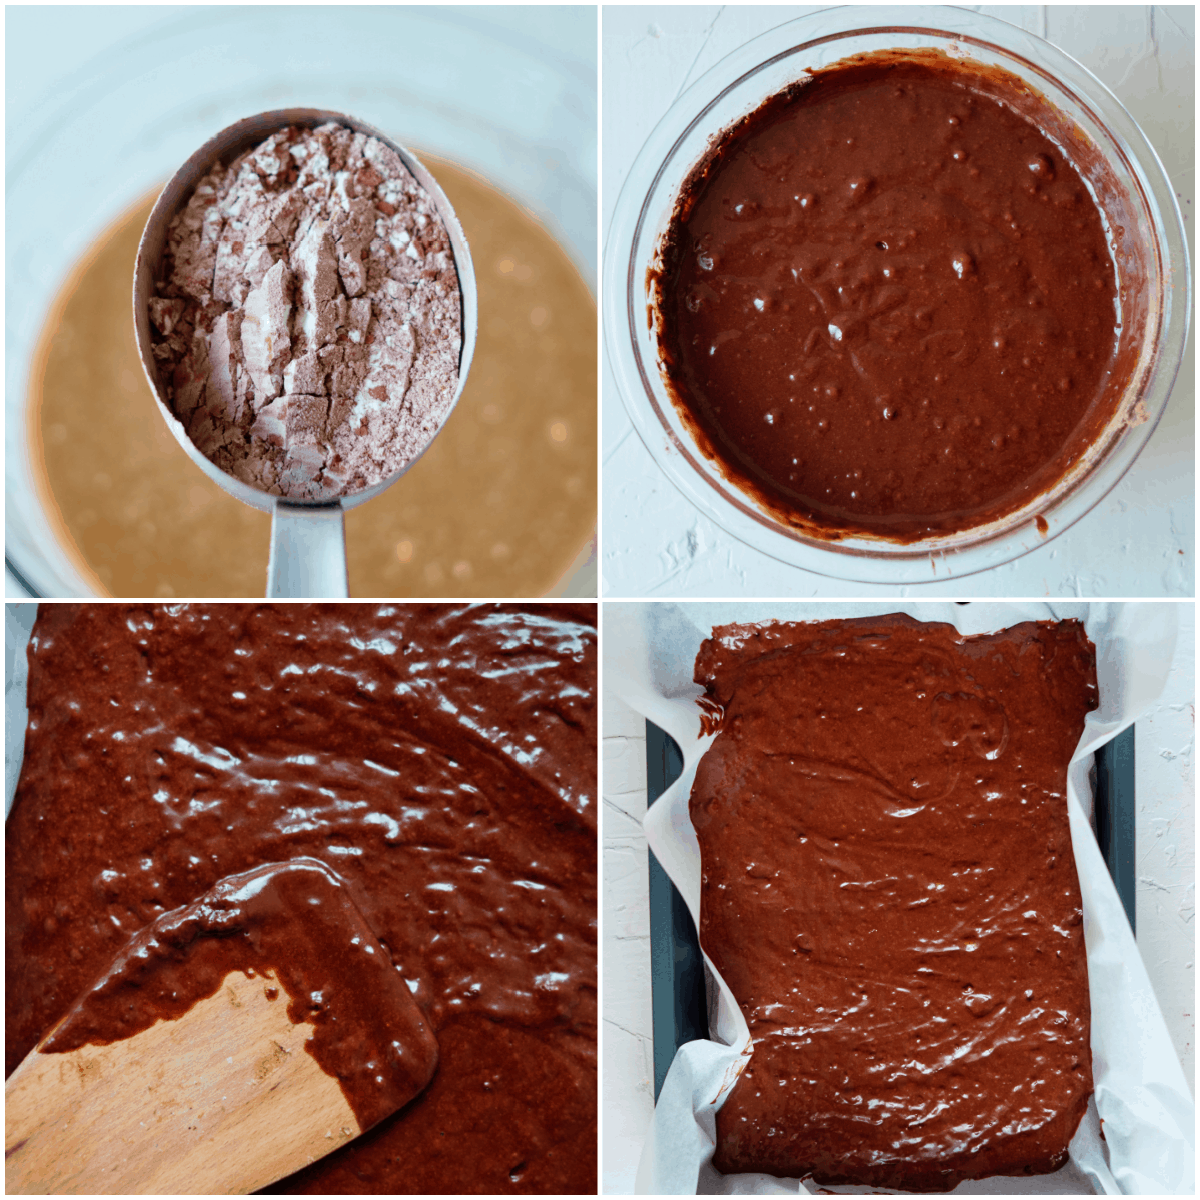 image collage showing the first steps for making Texas sheet cake